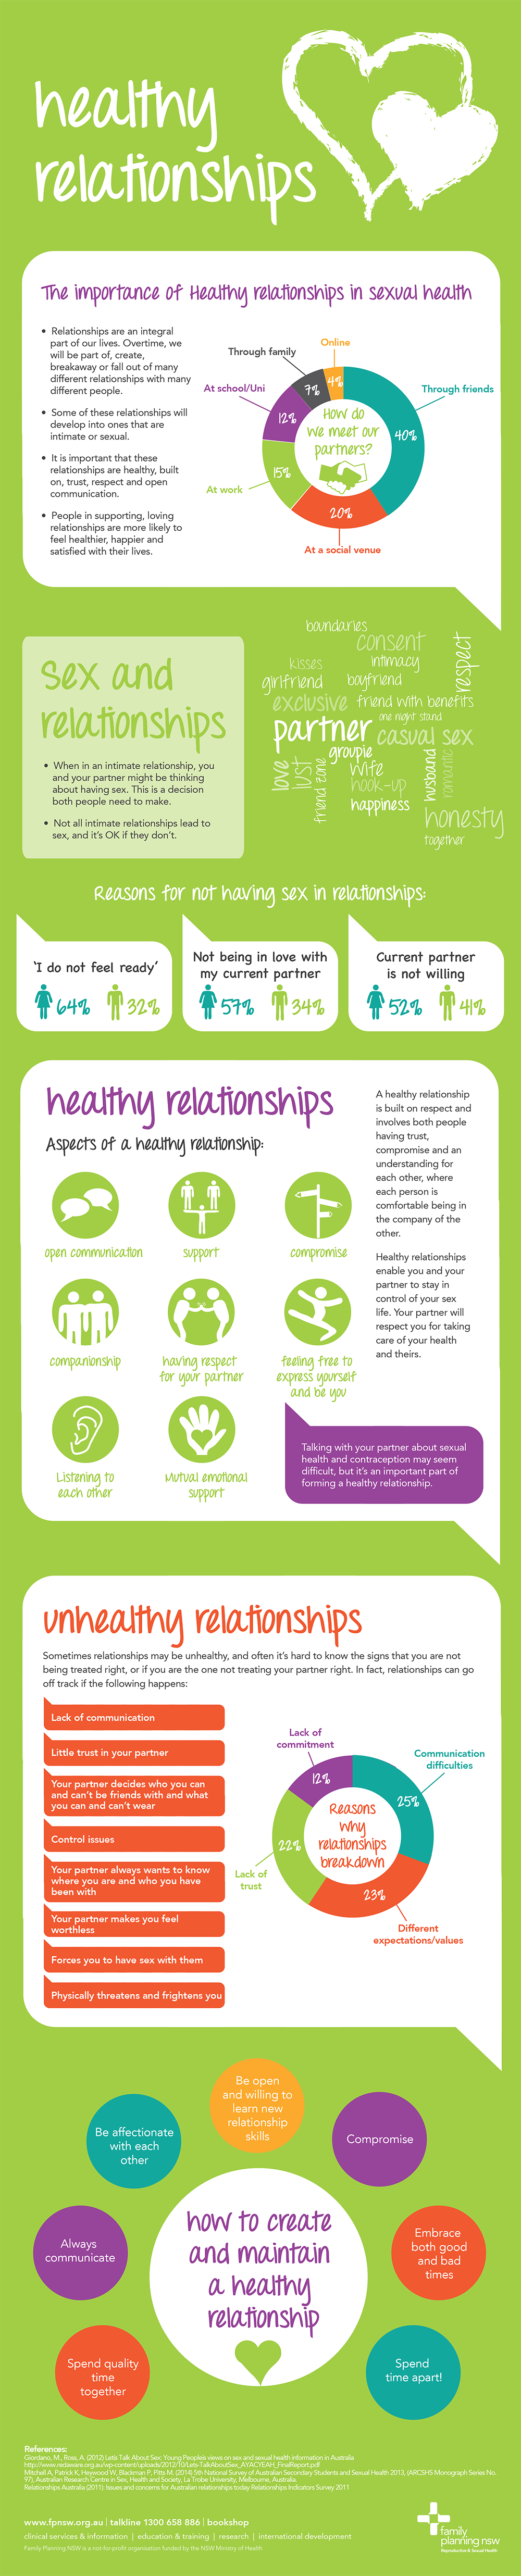 relationships-infographic